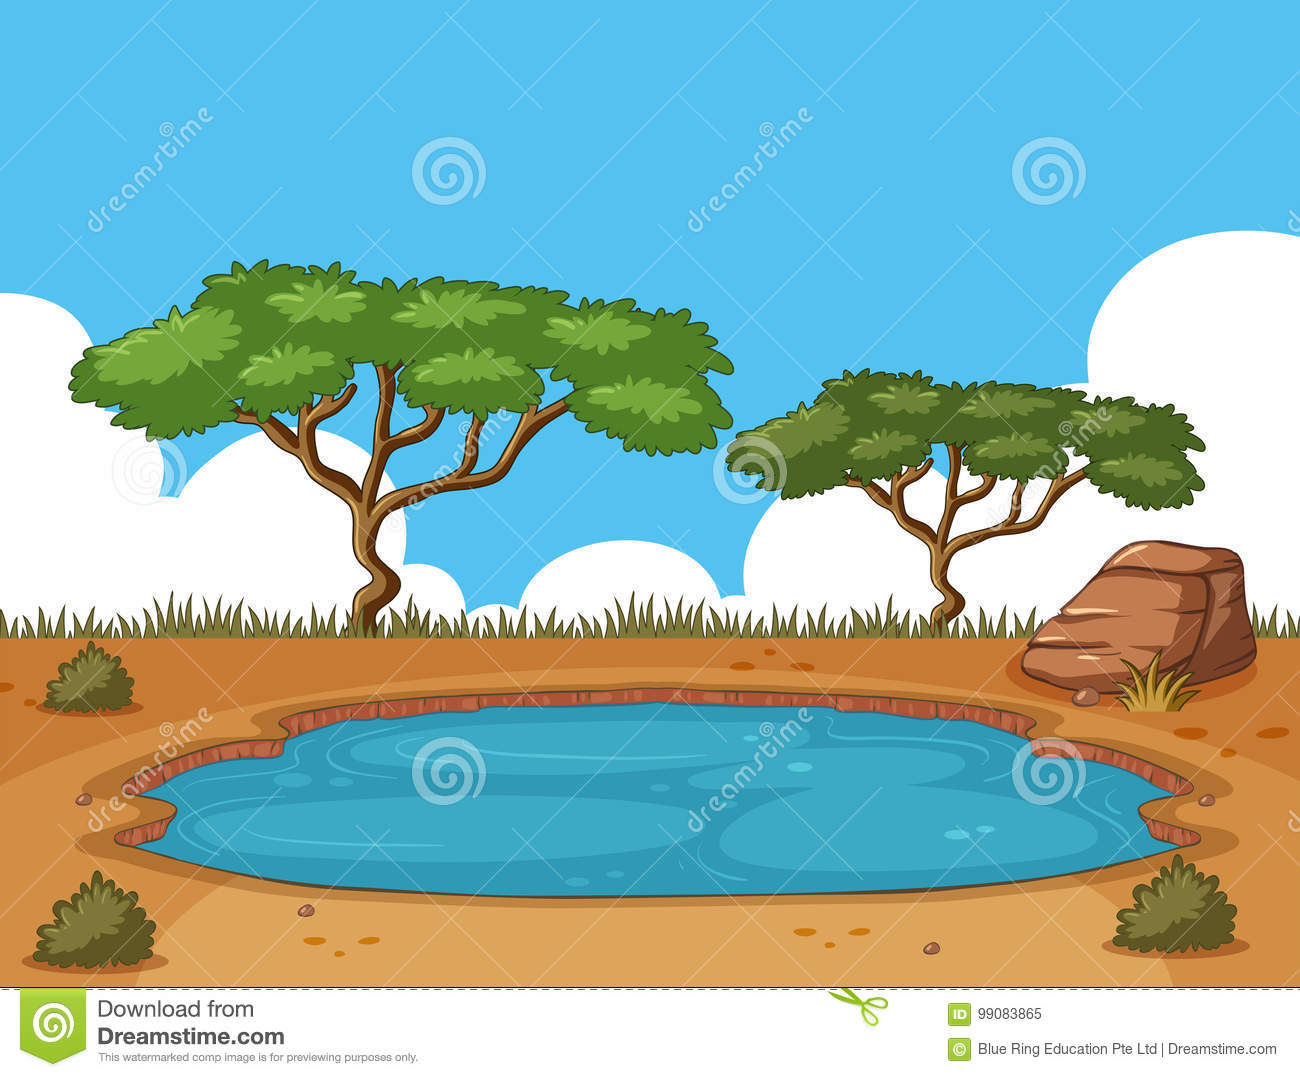 Background Scene With Pond In The Field Stock Vector Illustration